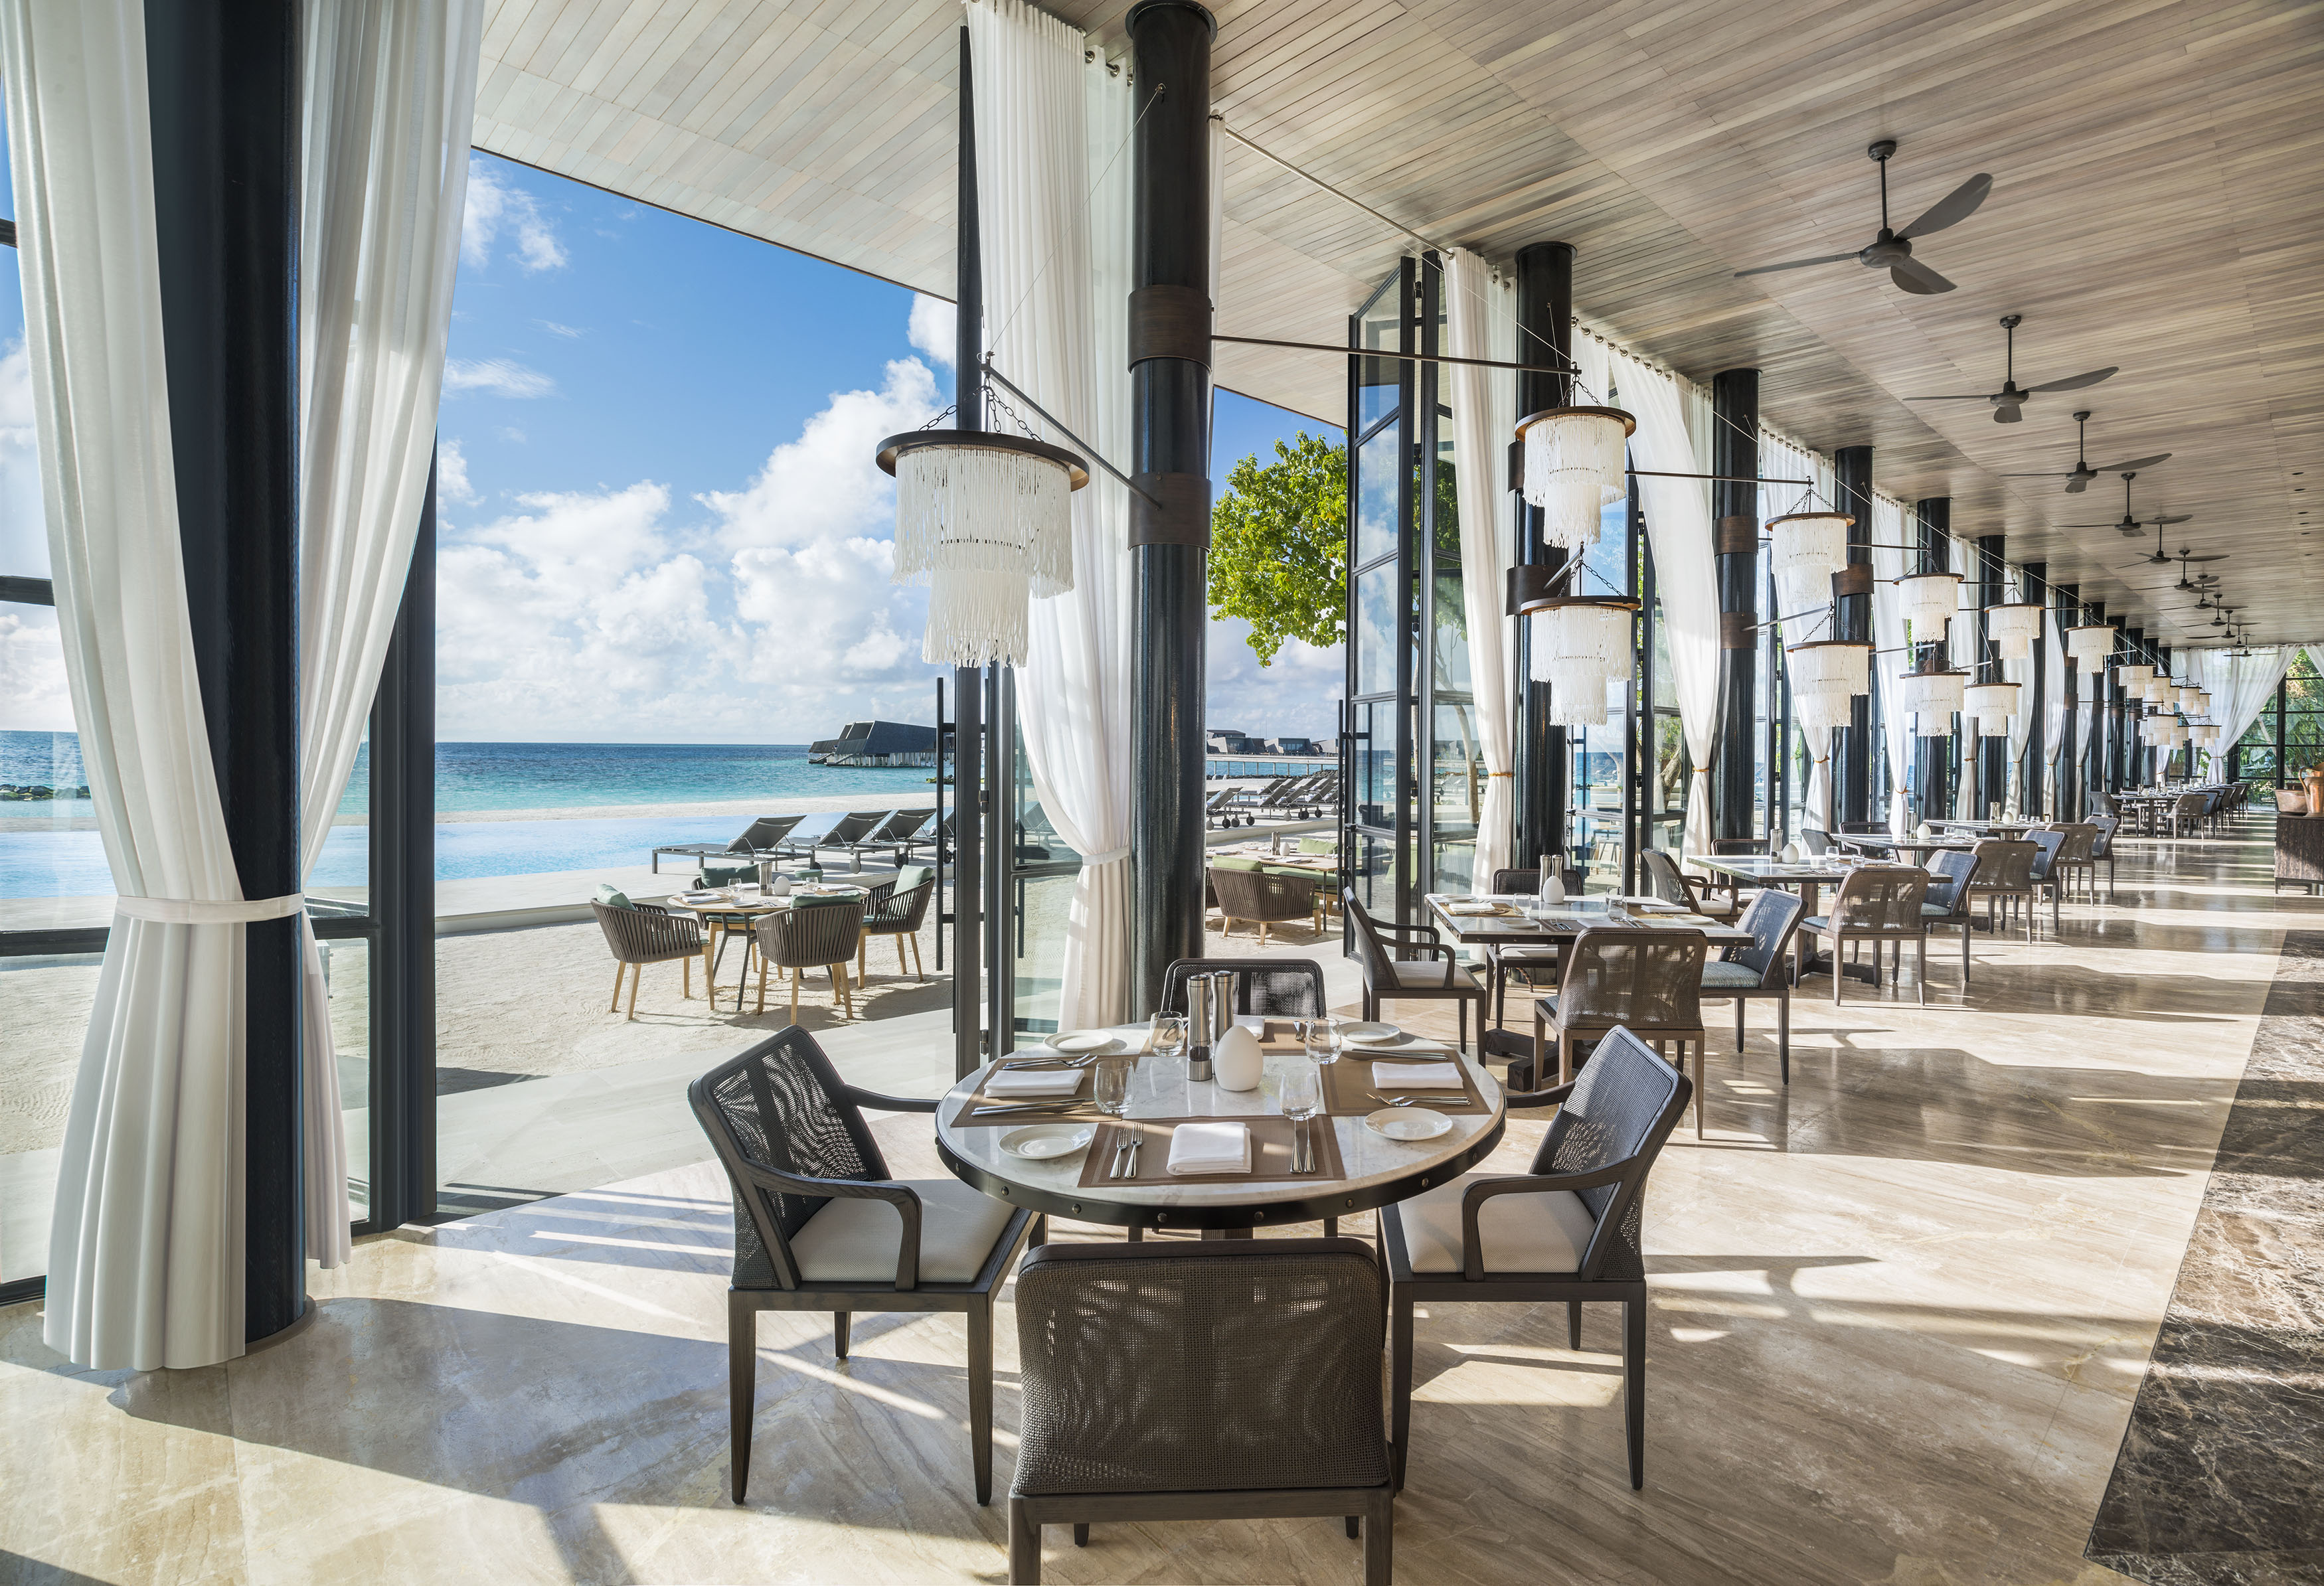 The Whale Bar, Maldives, Interior Design, Architecture, Luxury Holiday, WOW Architects, Beach Getaway, Wanderlust, Architecture. St Regis